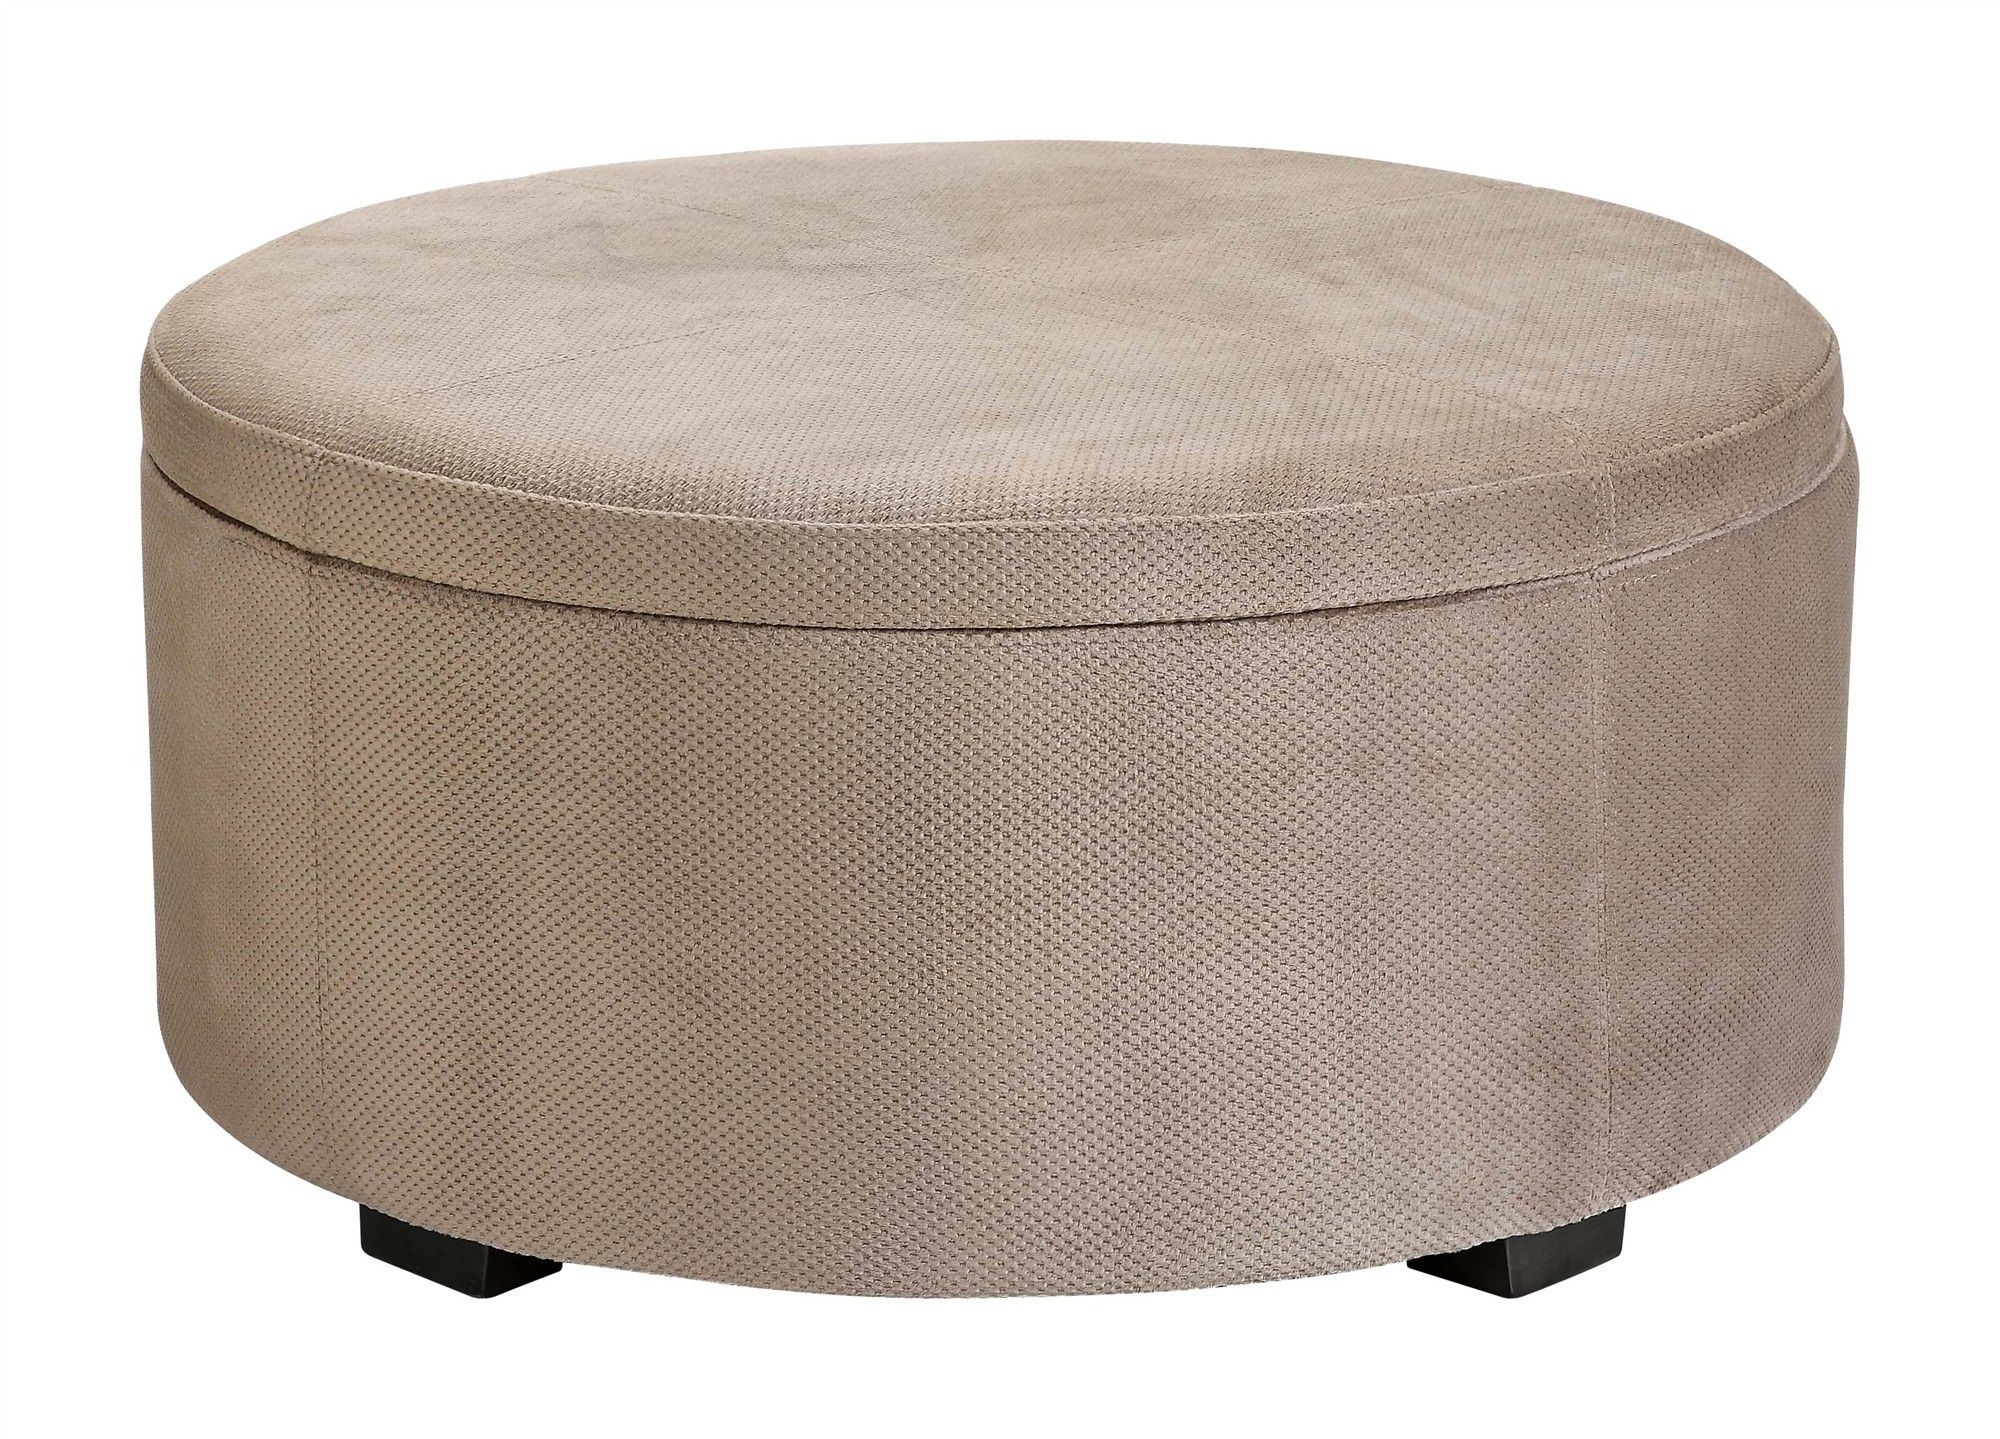 Astonishing Effigy Of Awesome Small Round Ottoman Furniture Dailytribune Chair Design For Home Dailytribuneorg